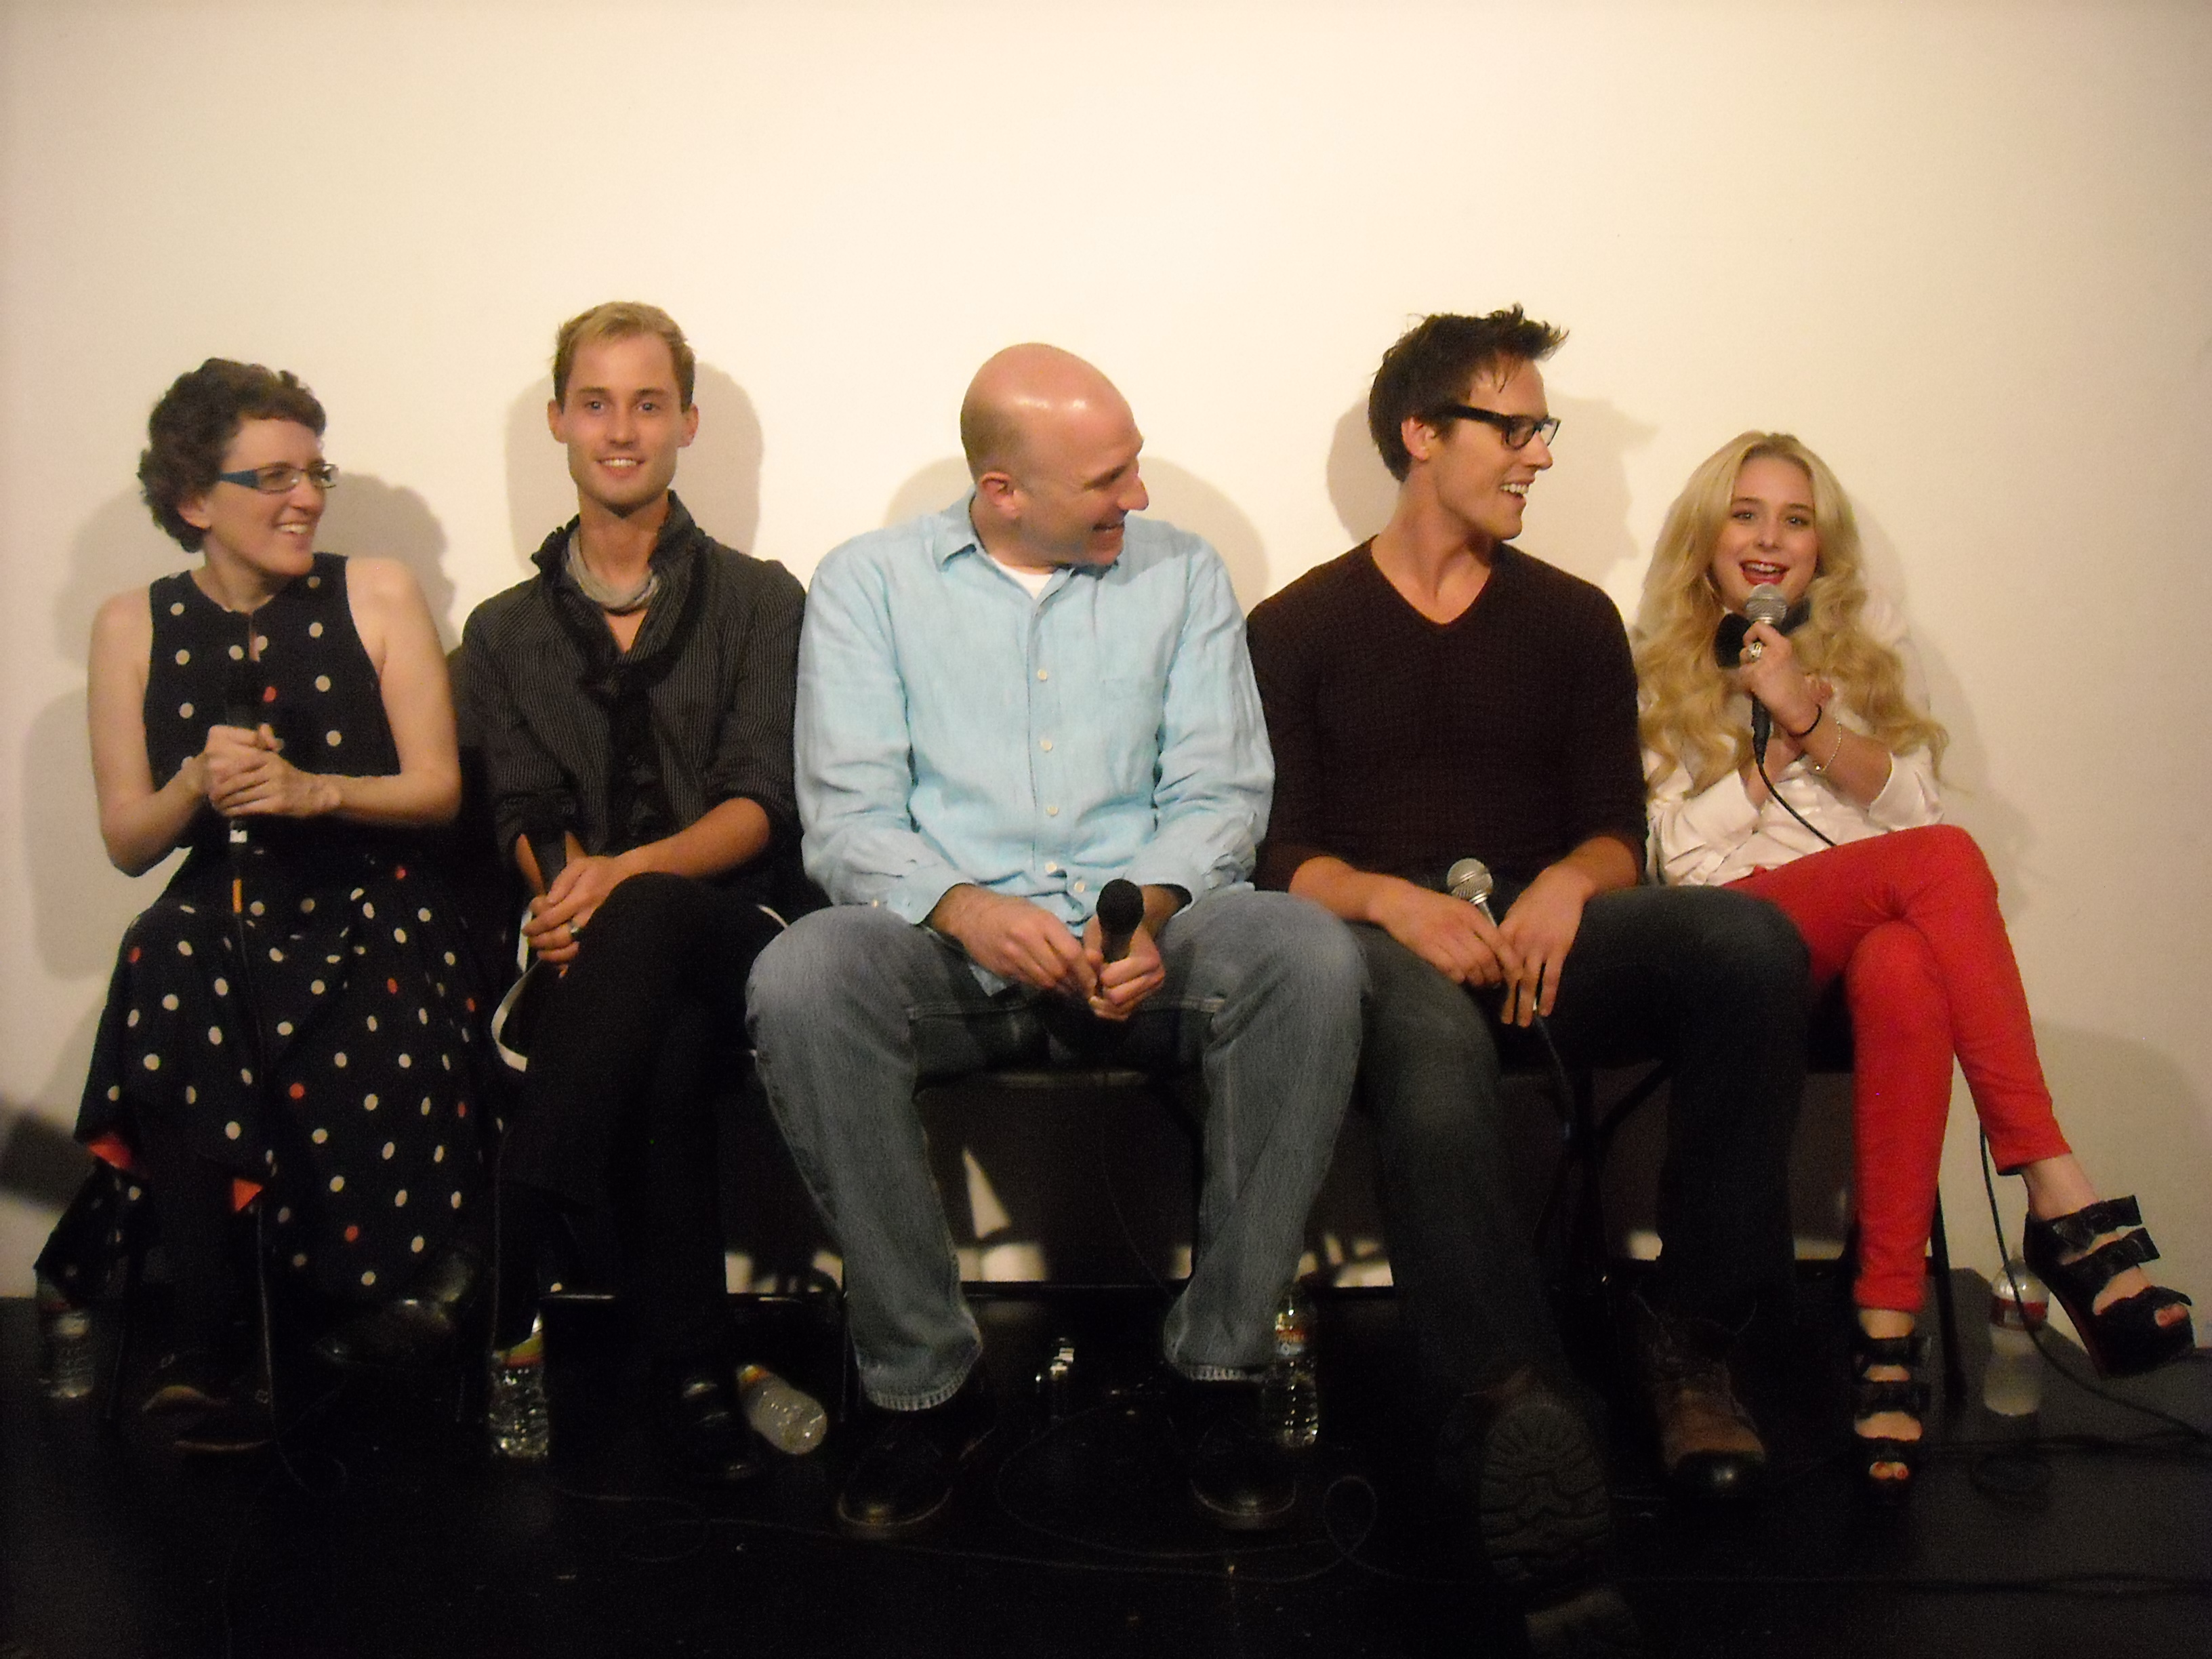 Jane Espenson, Cheeks, Jeff Greenstein, Sean Hemeon, and Alessandra Torresani at the Husbands Q&A